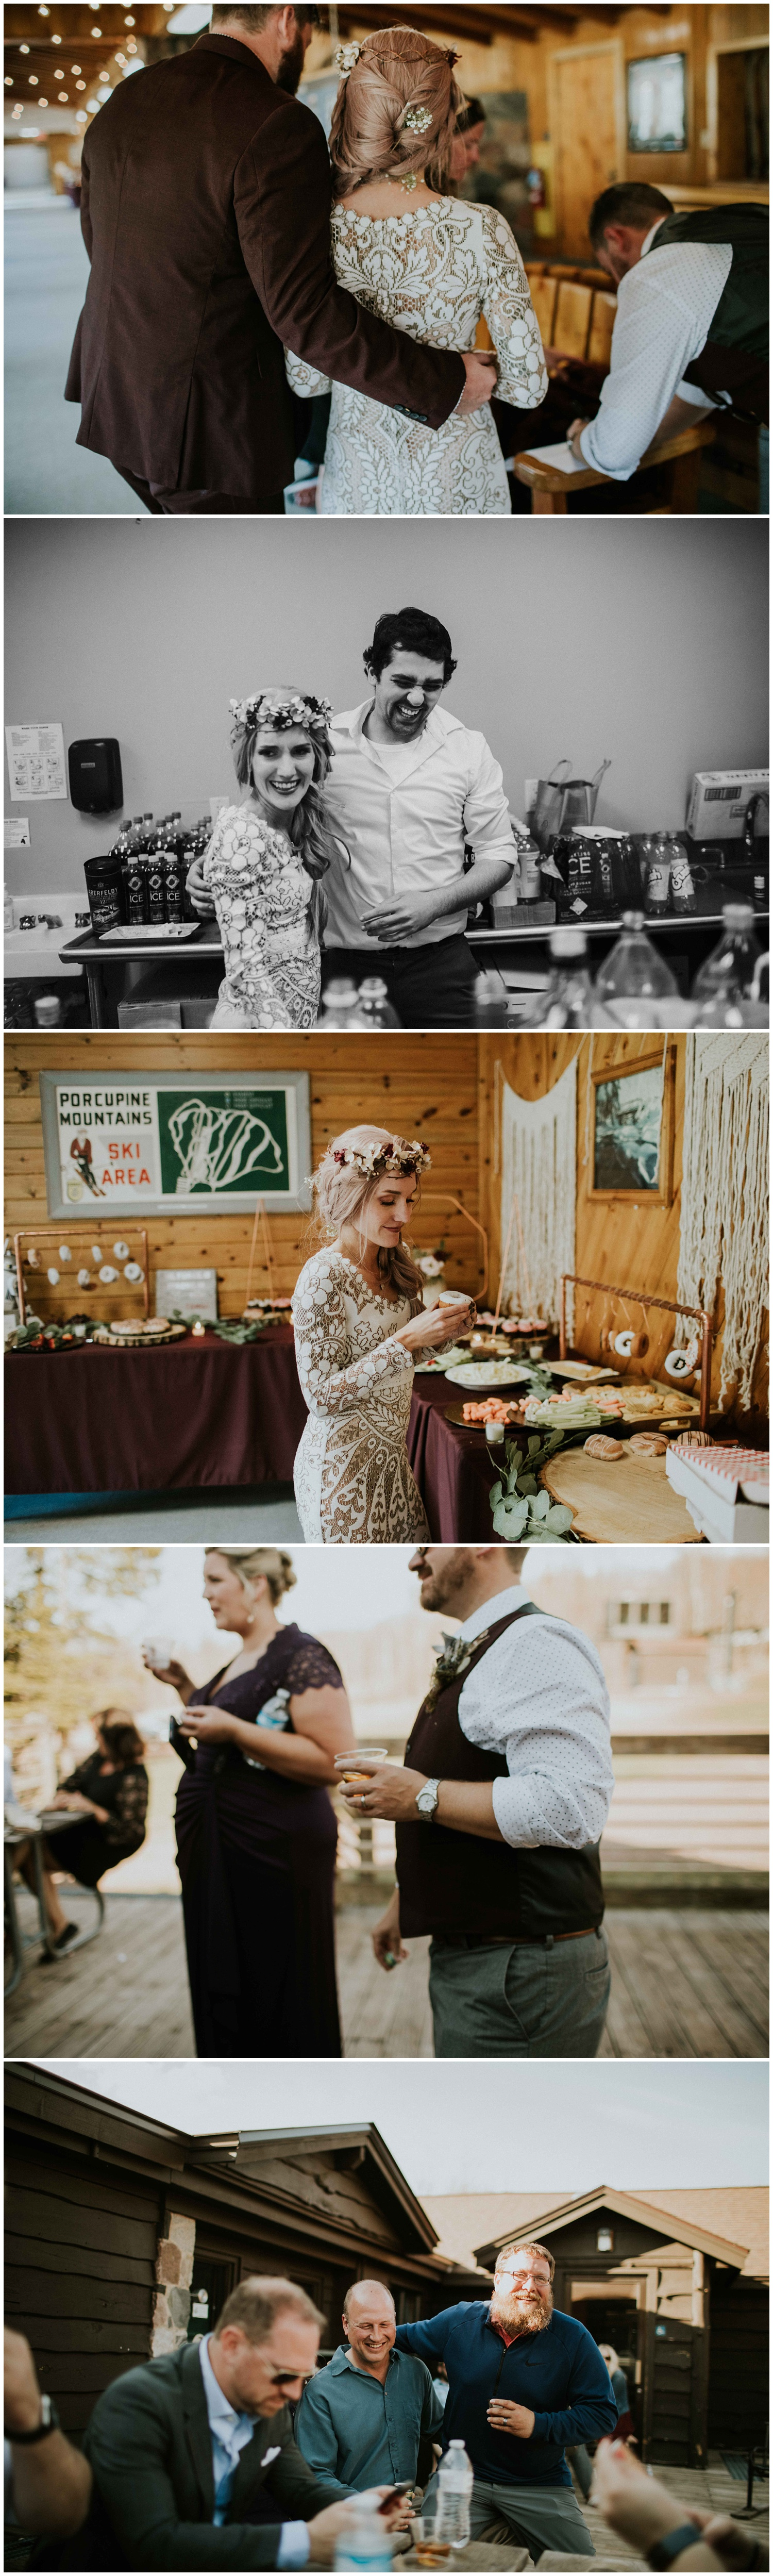 Porcupine Mountains May the Fourth Boho Star Wars Wedding Wisconsin Photographer Chloe Ann Photography_0019.jpg